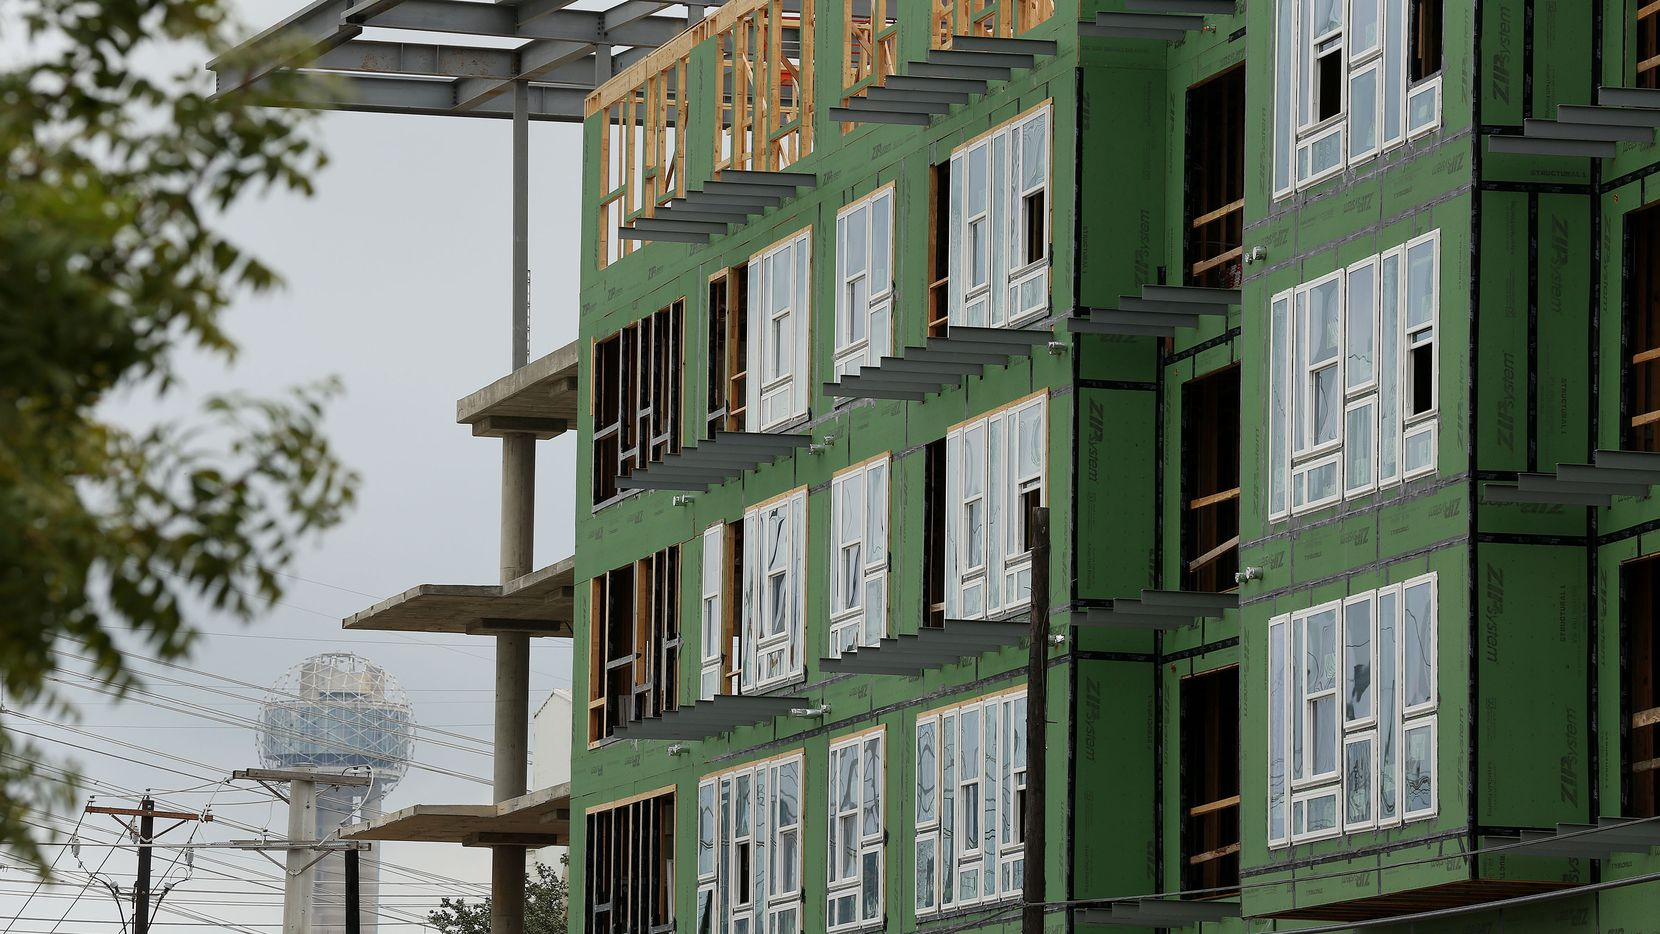 About 50,000 apartments are under construction in Dallas.